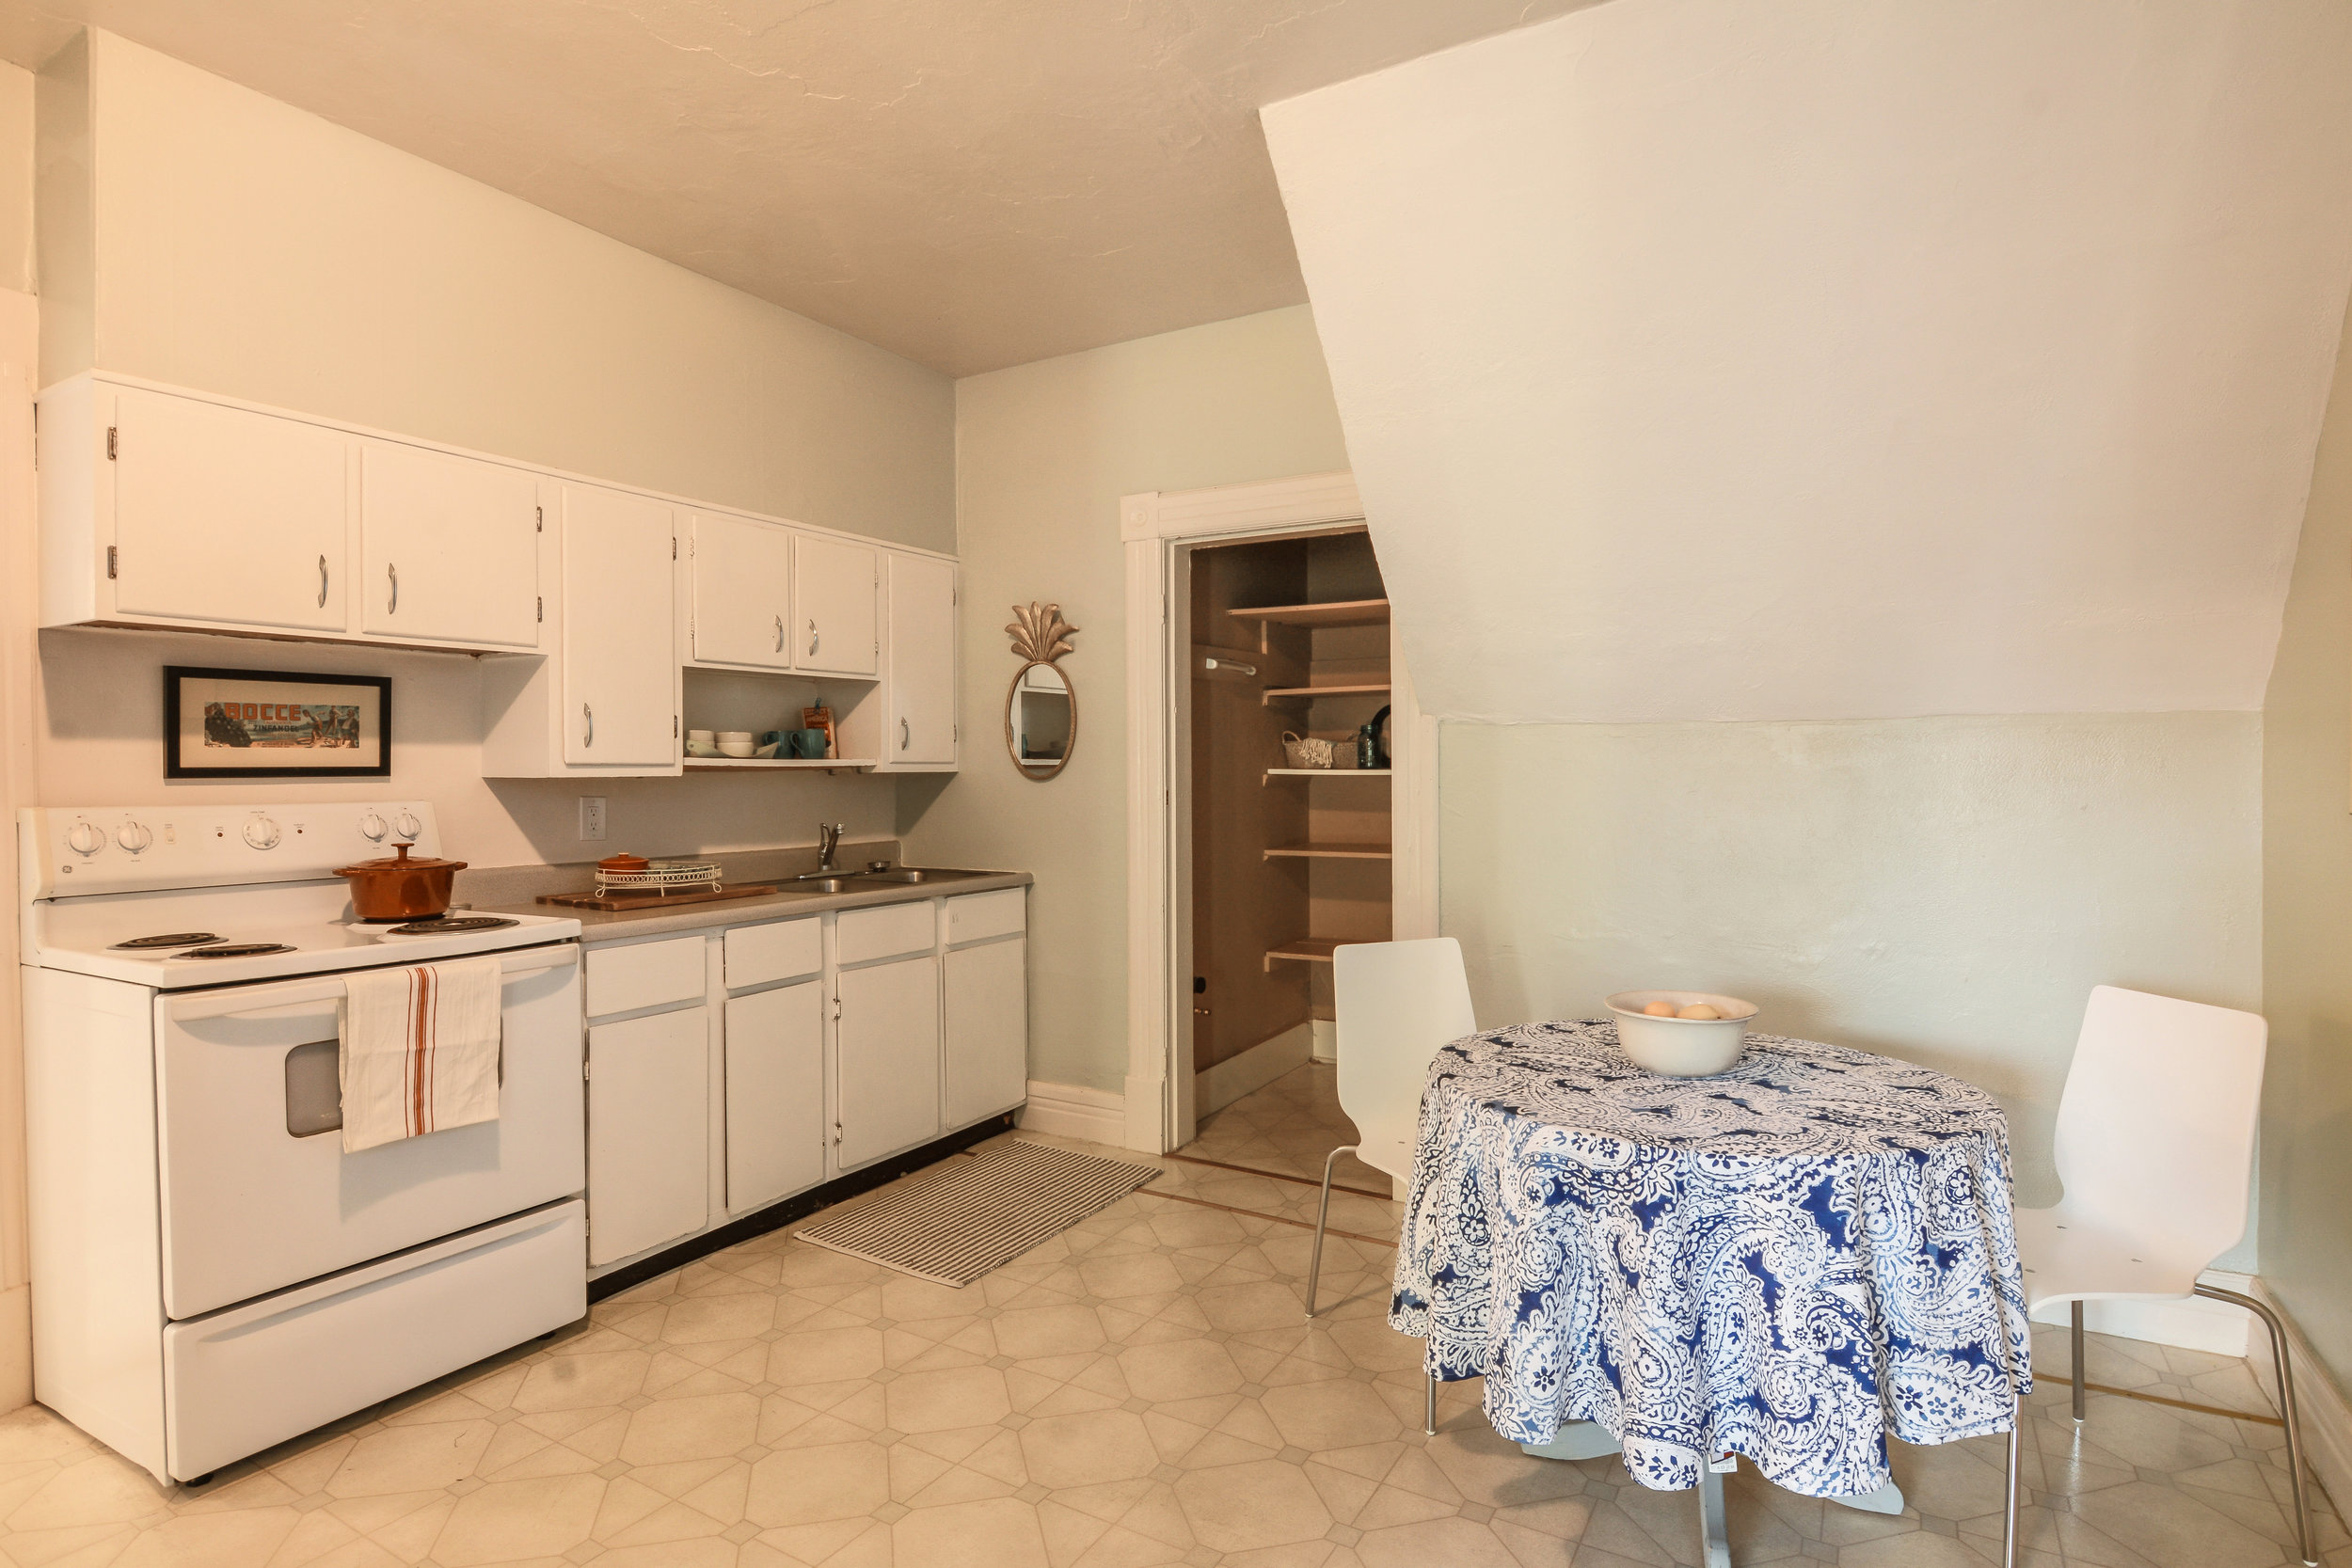 The second floor eat-in kitchen has plenty of room for a table and chairs. There's a refrigerator, stove, pantry, and stainless double-sink.